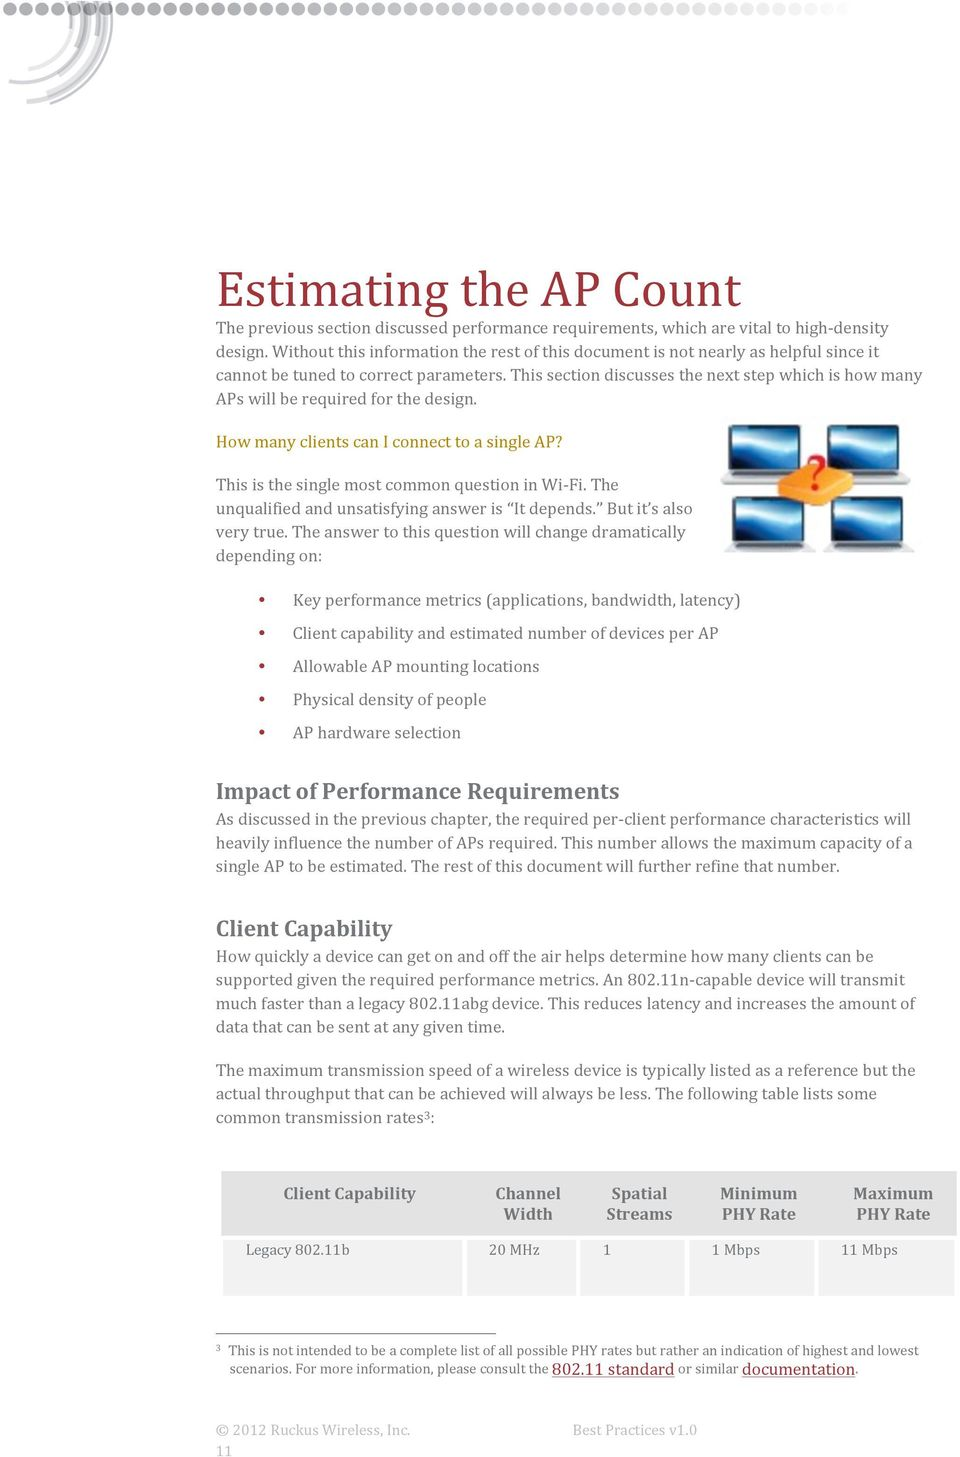 This section discusses the next step which is how many APs will be required for the design. How many clients can I connect to a single AP? This is the single most common question in Wi- Fi.